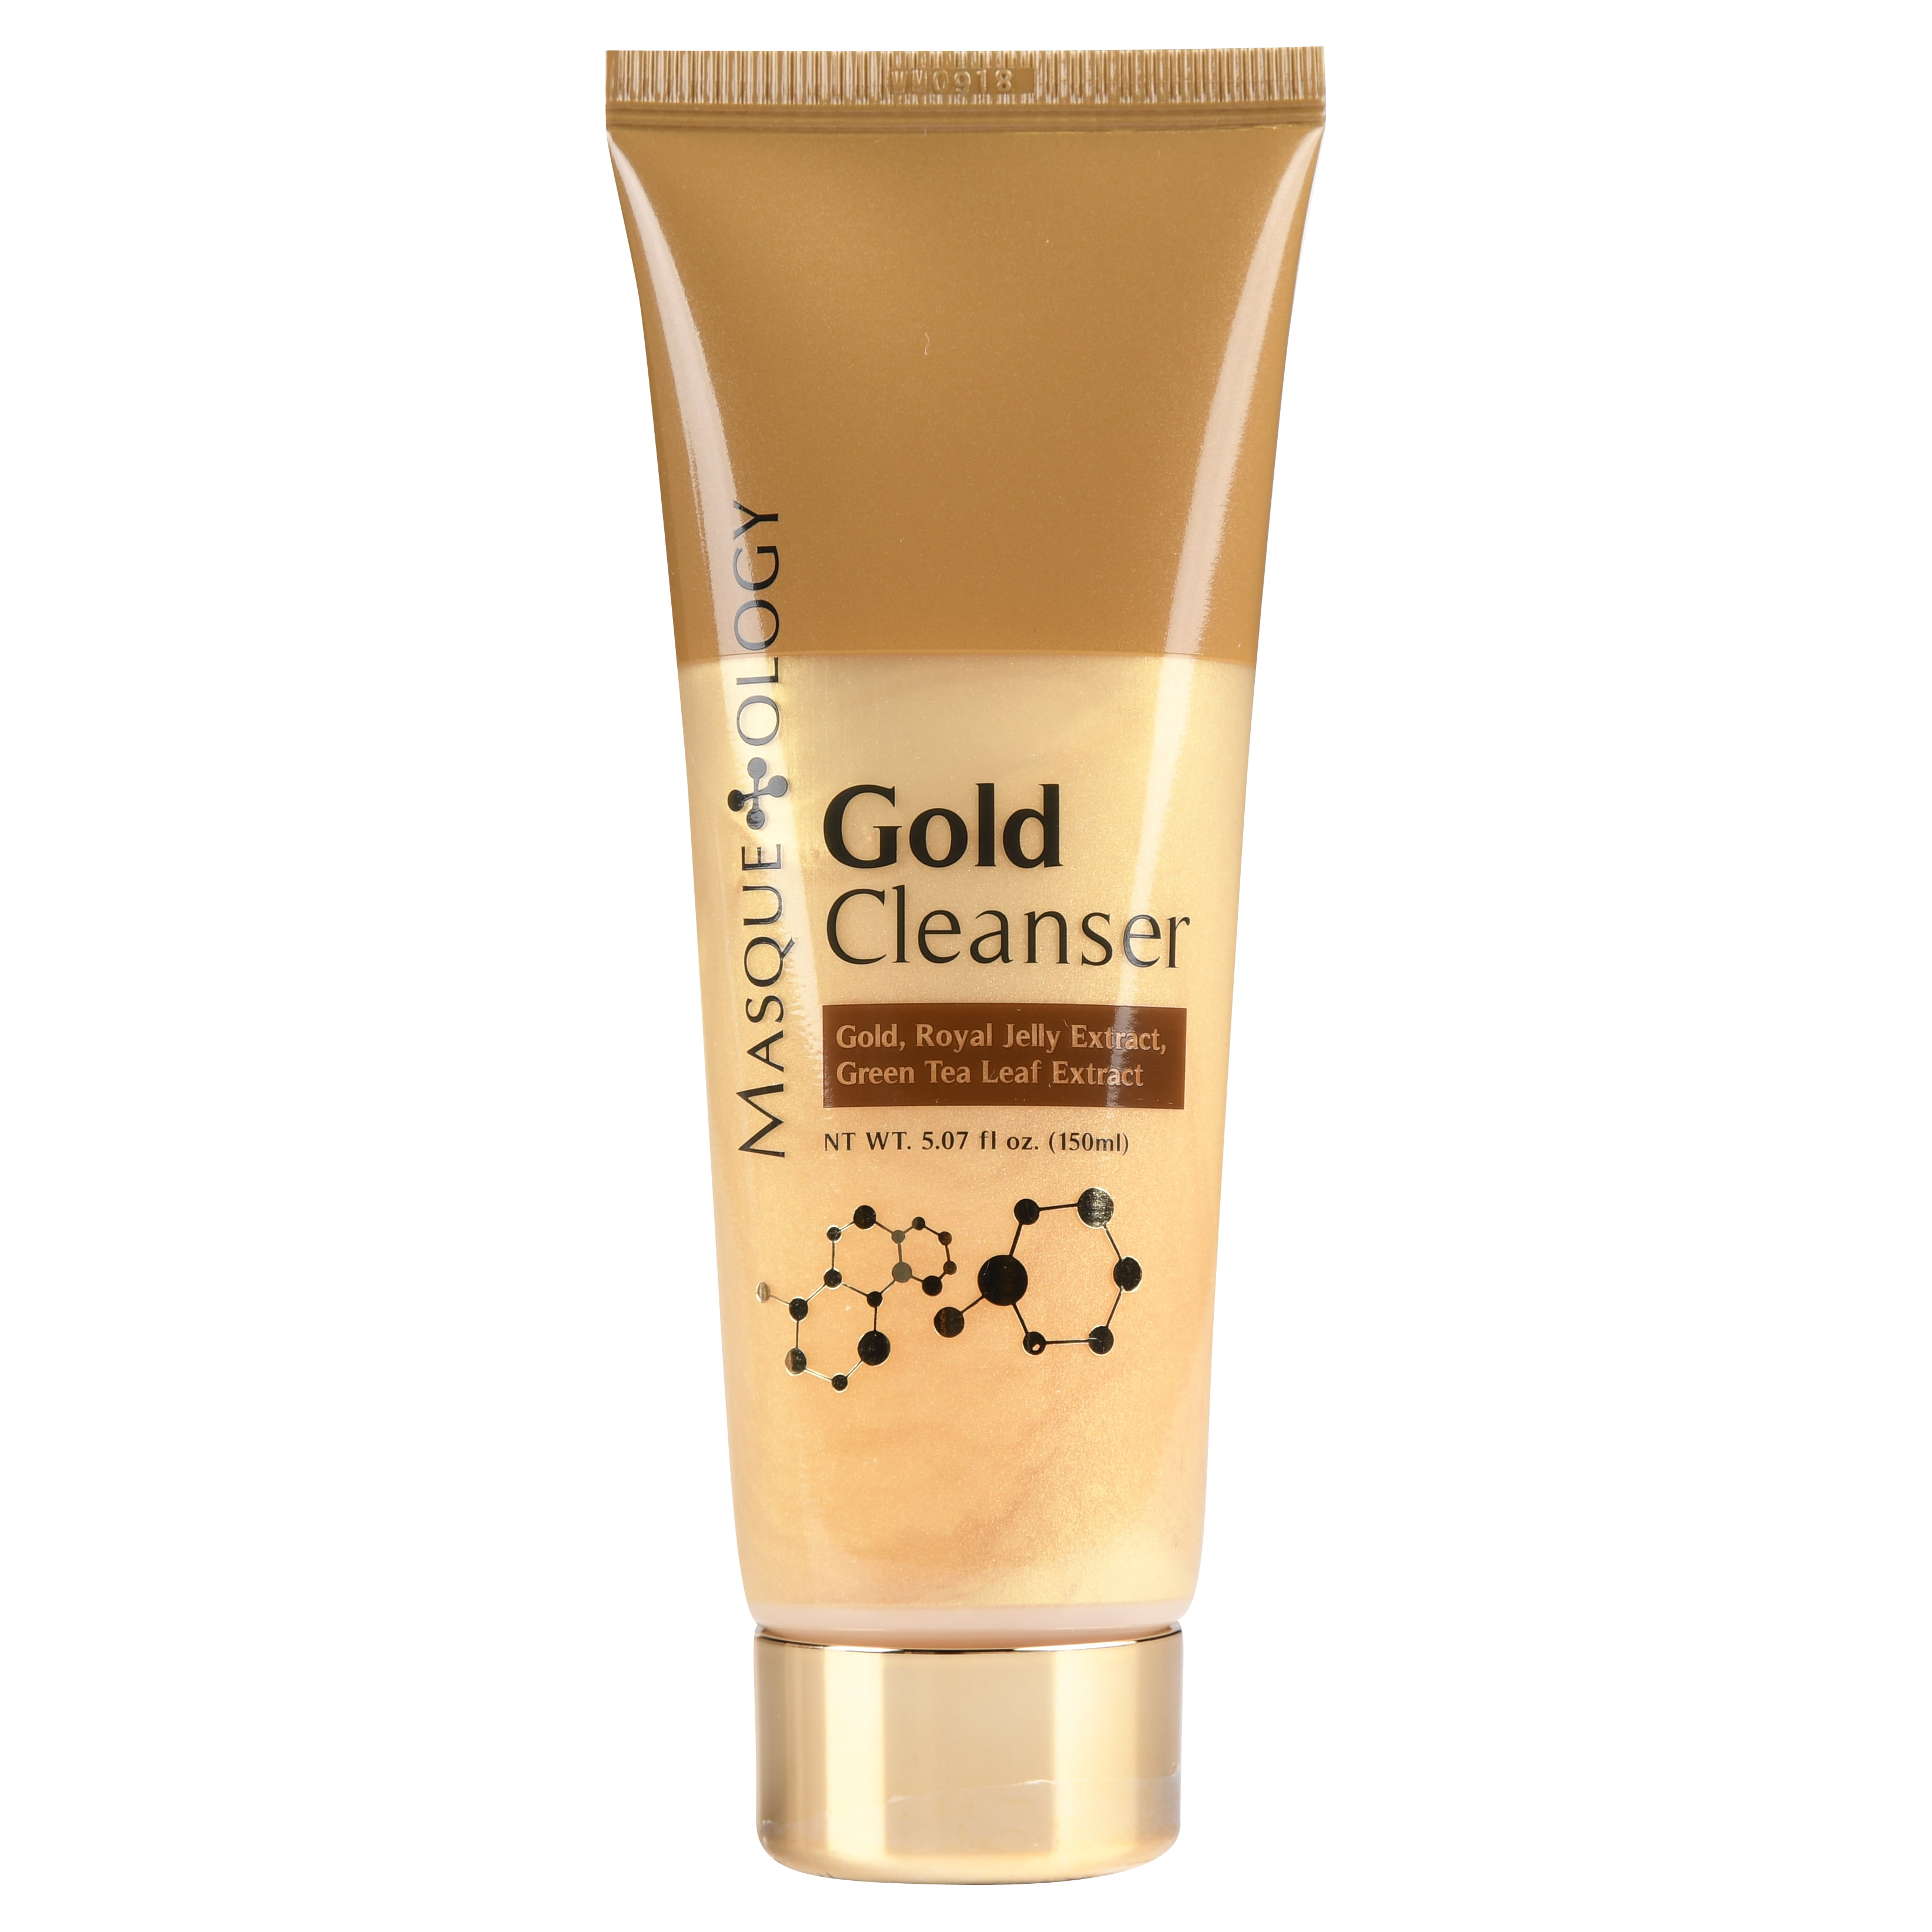 Gold Cleanser by Masqueology #10